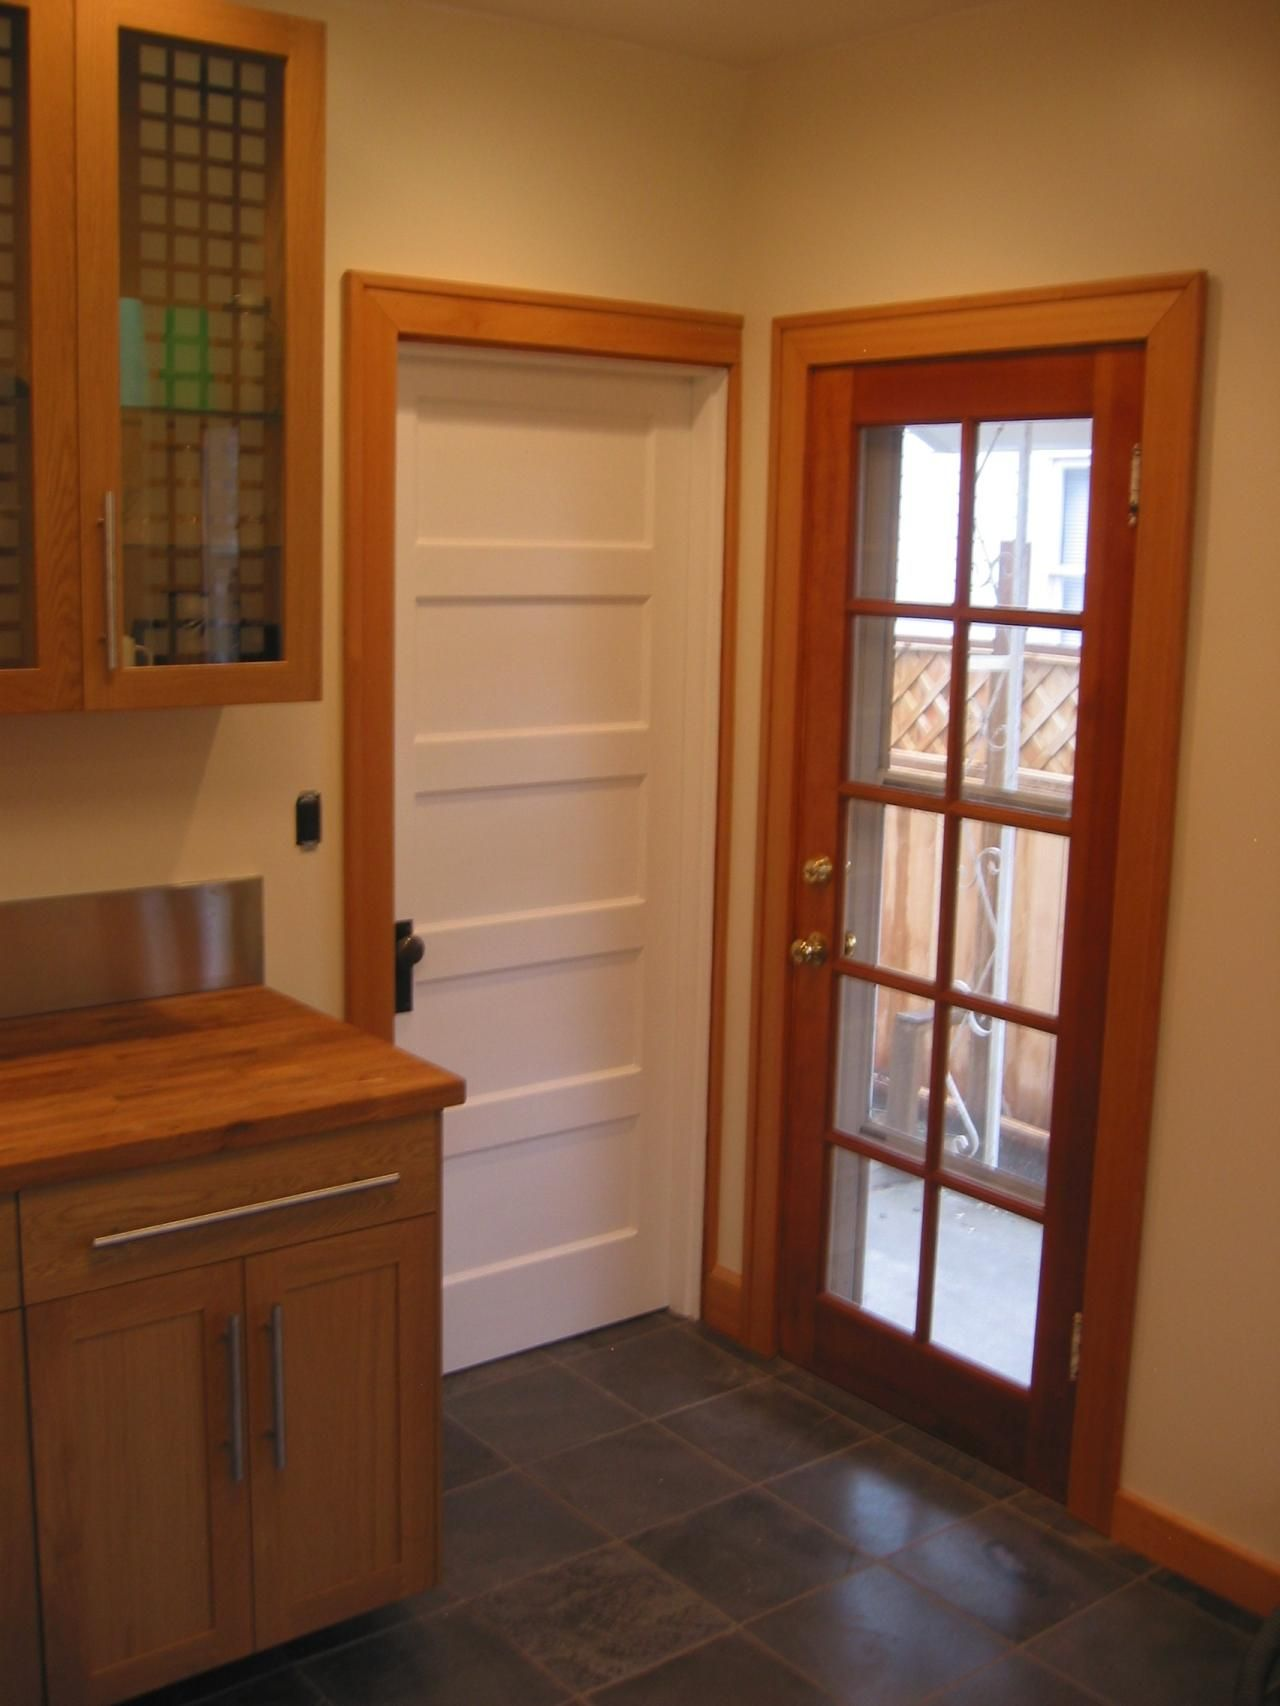 1927 Sellwood Craftsman Home Kitchen Entry Doors Front Entry Doors Kitchen Countertops Granite Colors